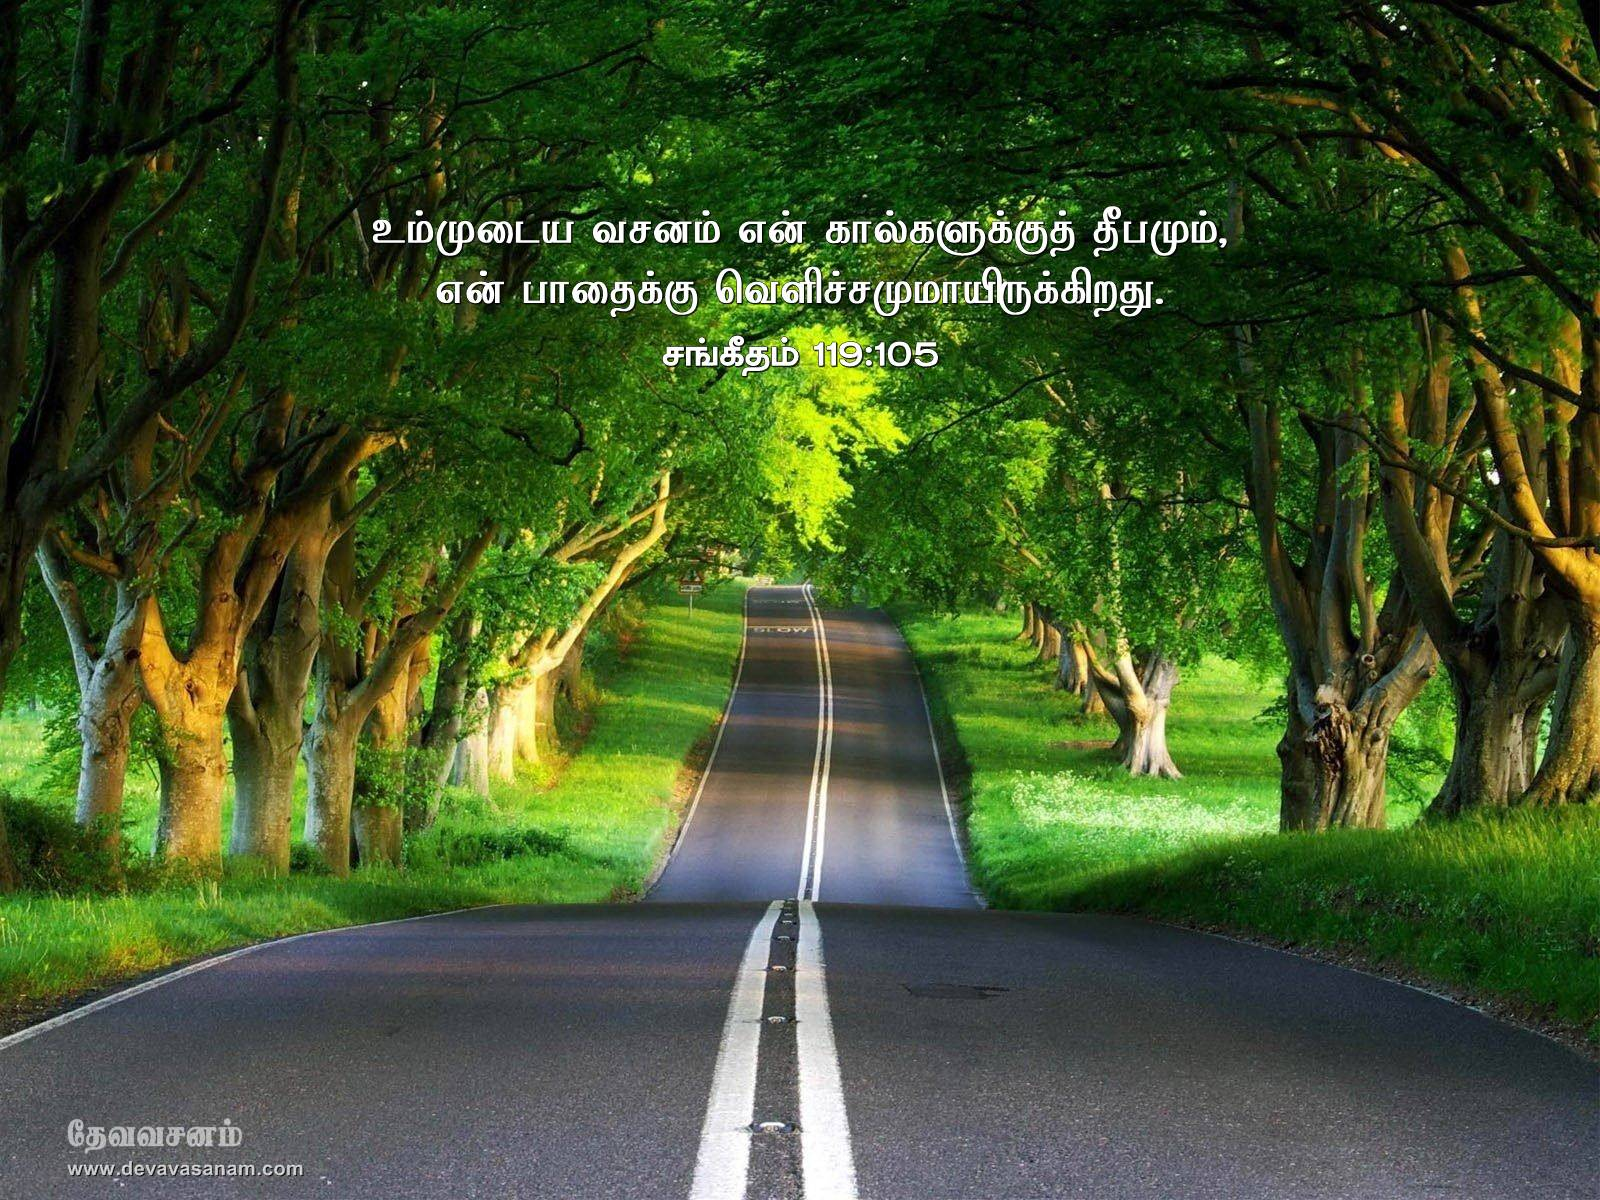 At 8 20 Am Labels Tamil Bible Quotes Tamil Bible Verse Wallpapers 1600x1200